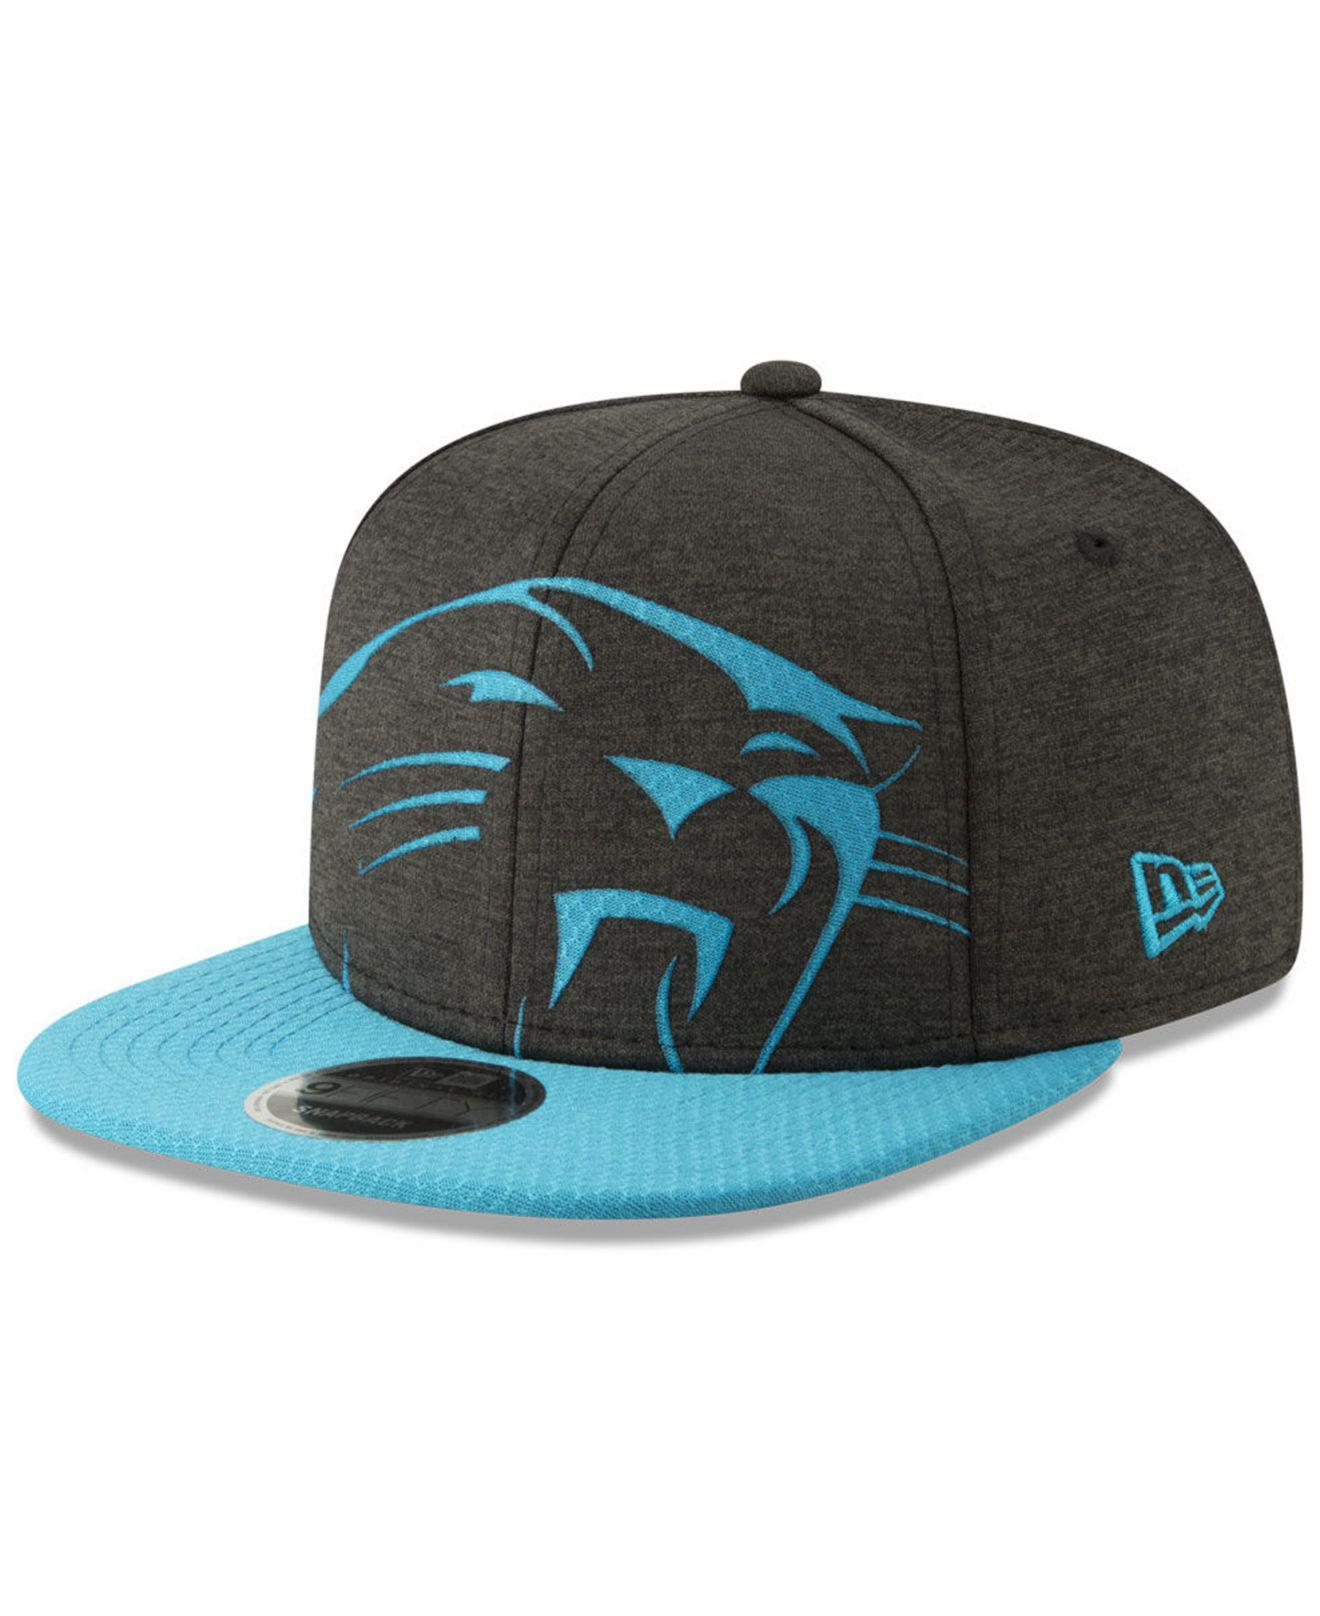 cc1aa9b1adcd8 best carolina panthers new era 2017 nfl draft 59fifty cap 88709 ad0ef   closeout ktz. mens black carolina panthers oversized laser cut 9fifty  snapback cap ...